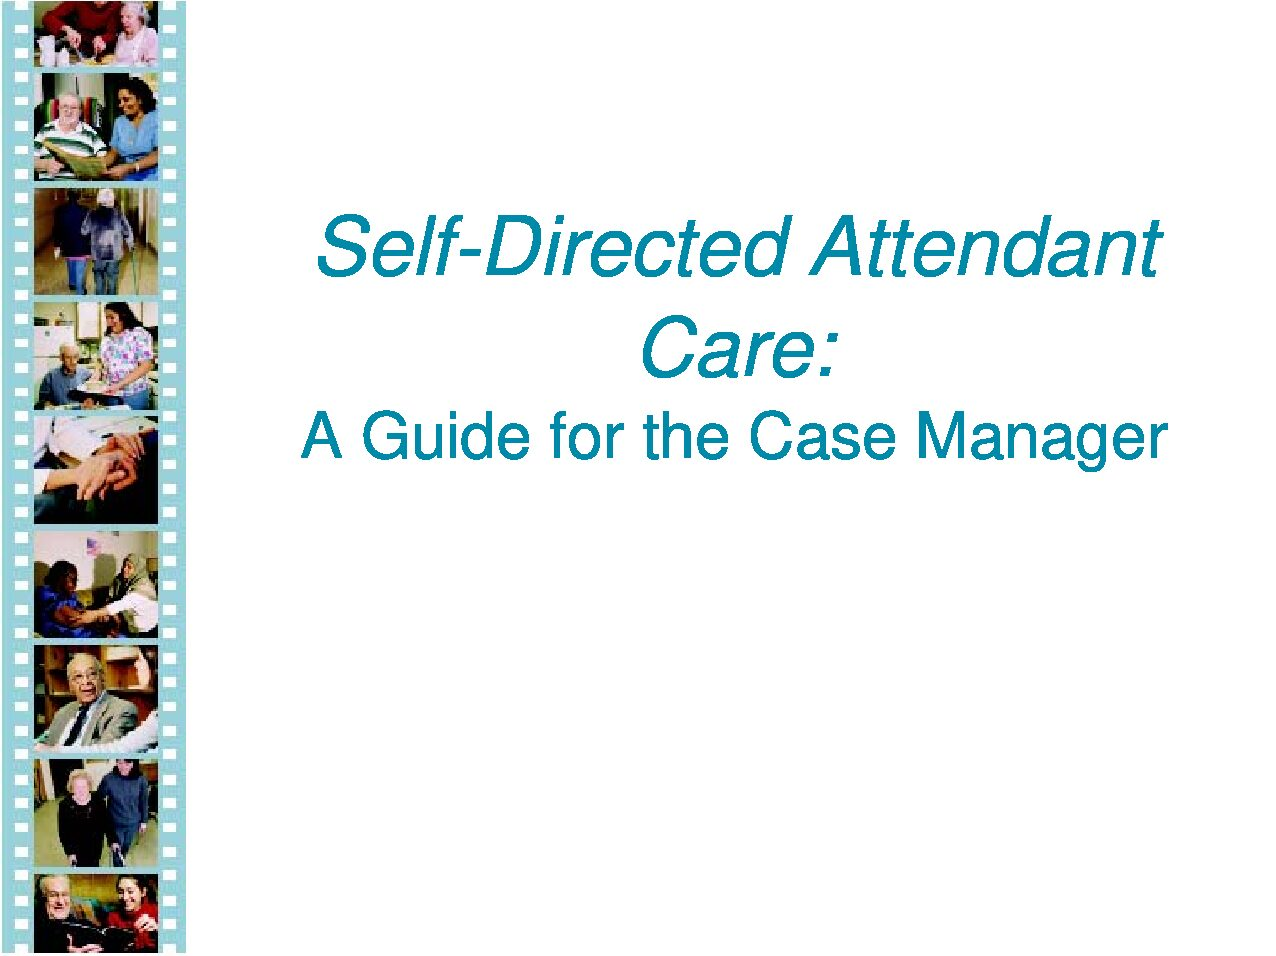 Self-Directed Attendant Care: A Guide for Case Managers A Guide for the Case Manager